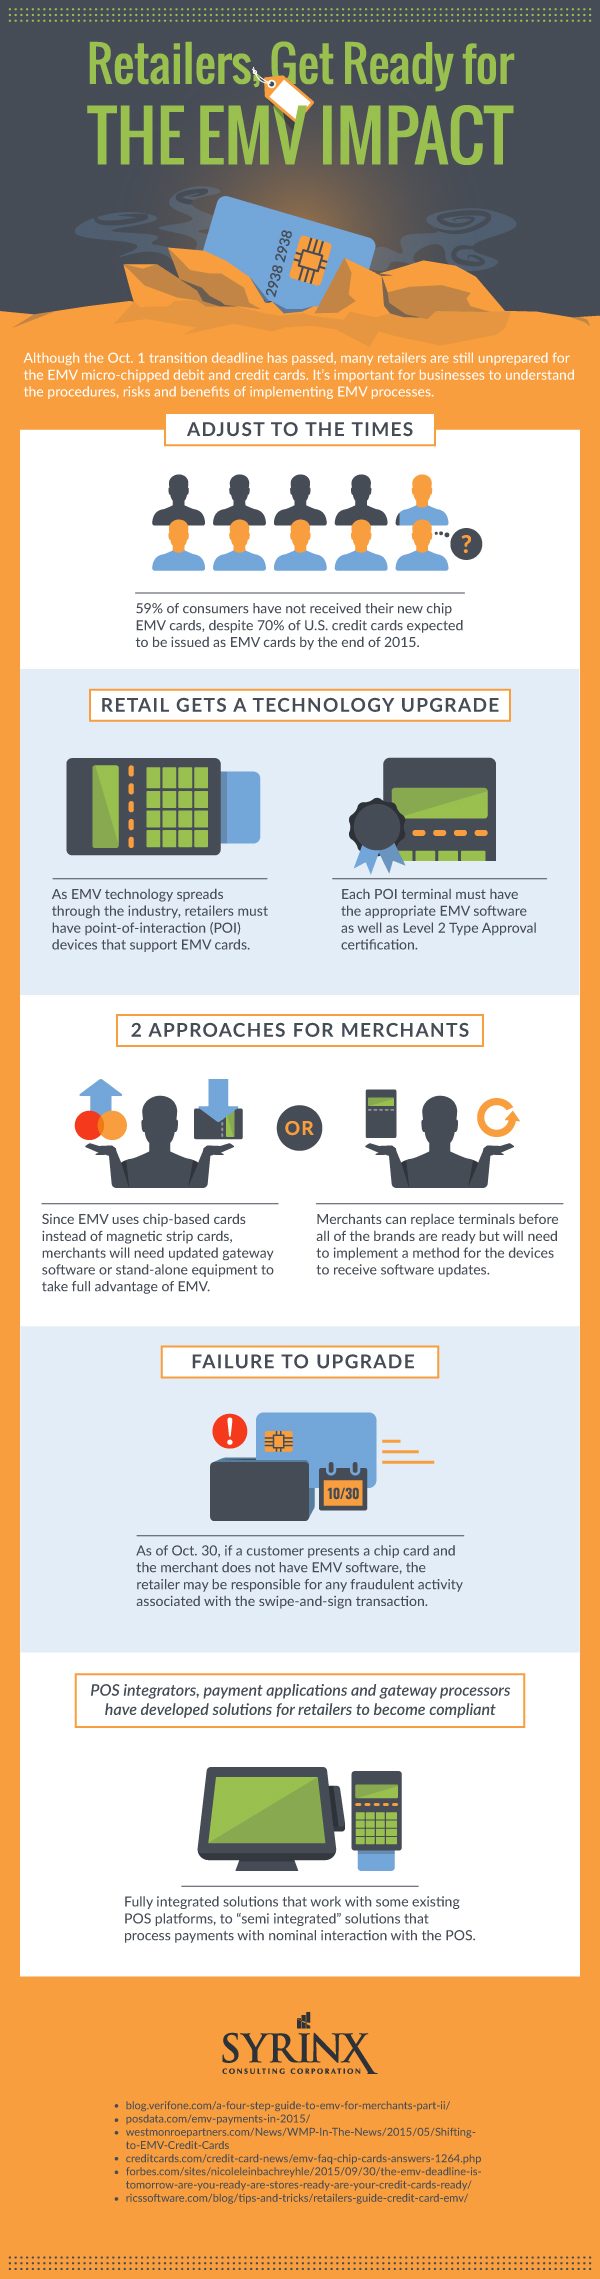 The EMV Impact Infographic